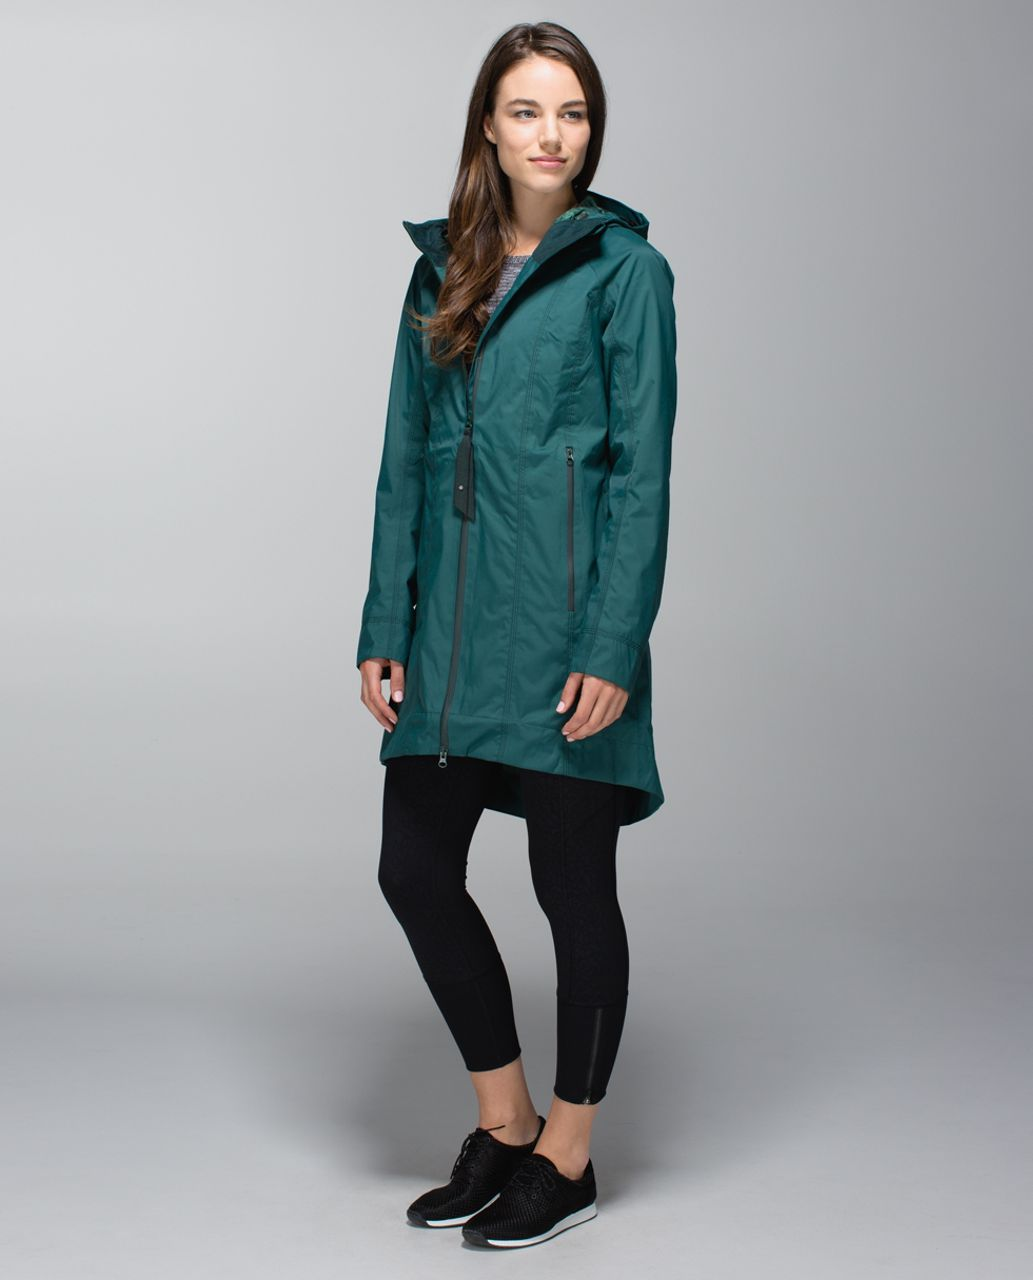 Lululemon Right As Rain Jacket - Fuel Green